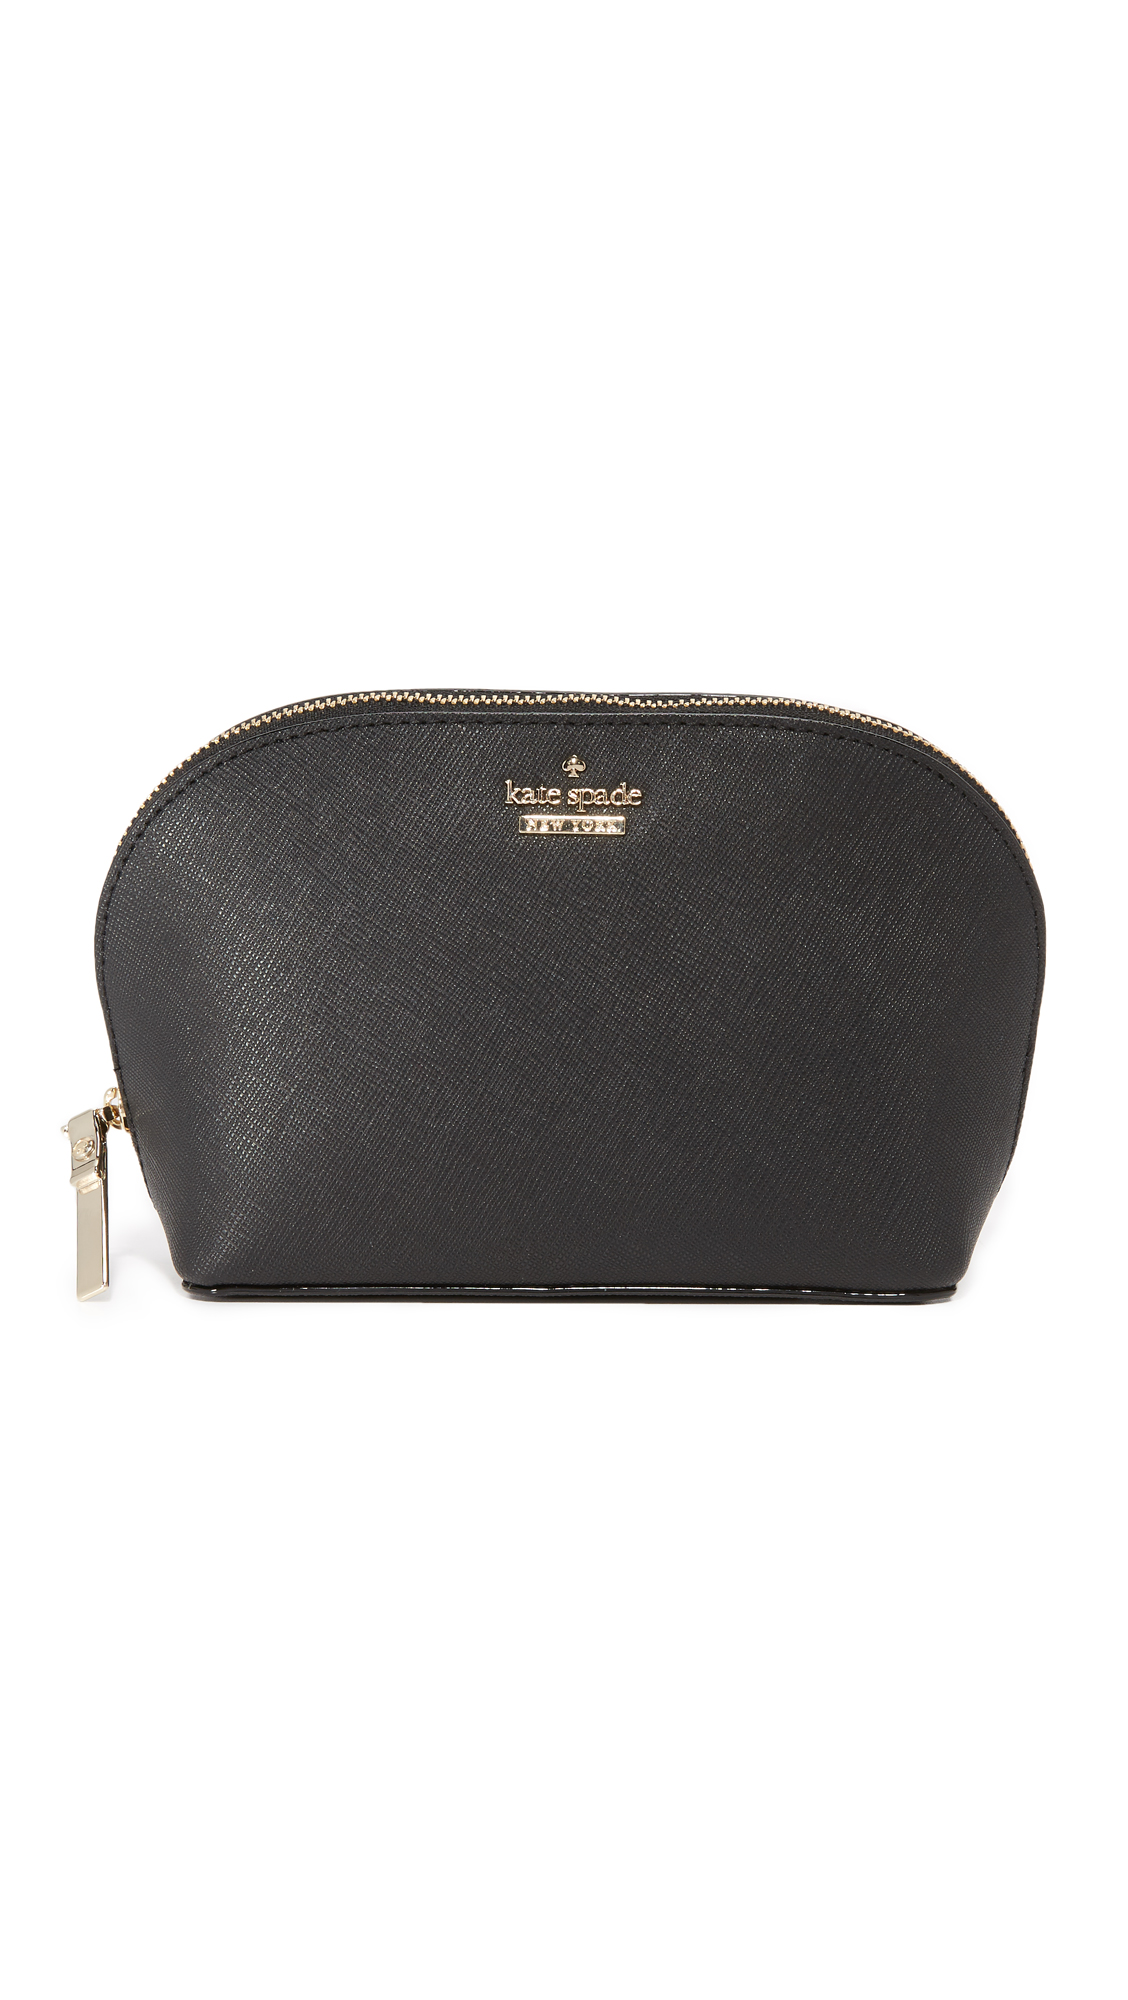 kate spade female 188971 kate spade new york small abalene cosmetic case black